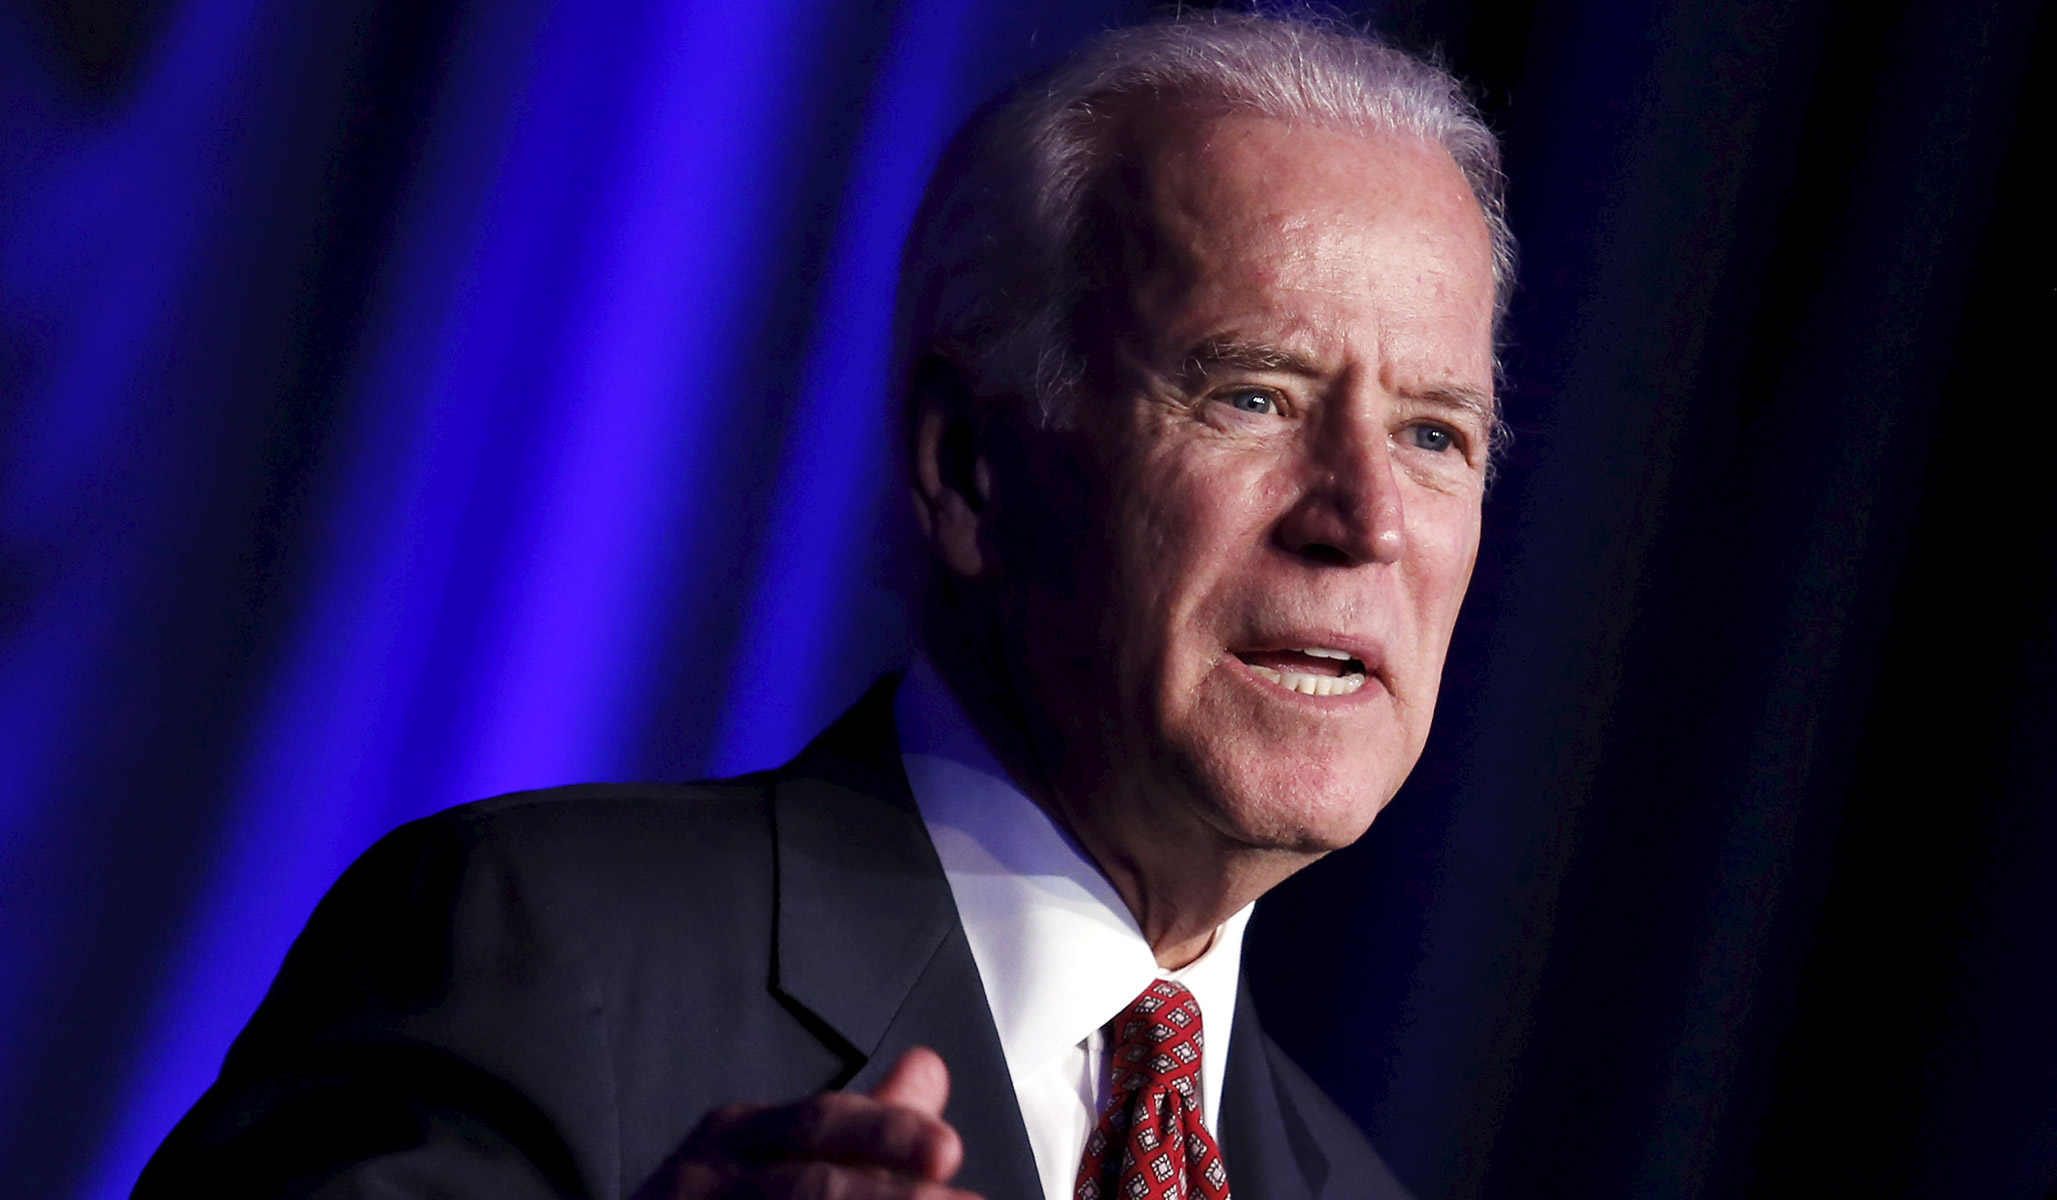 The Most Disturbing Thing About Joe Biden National Review